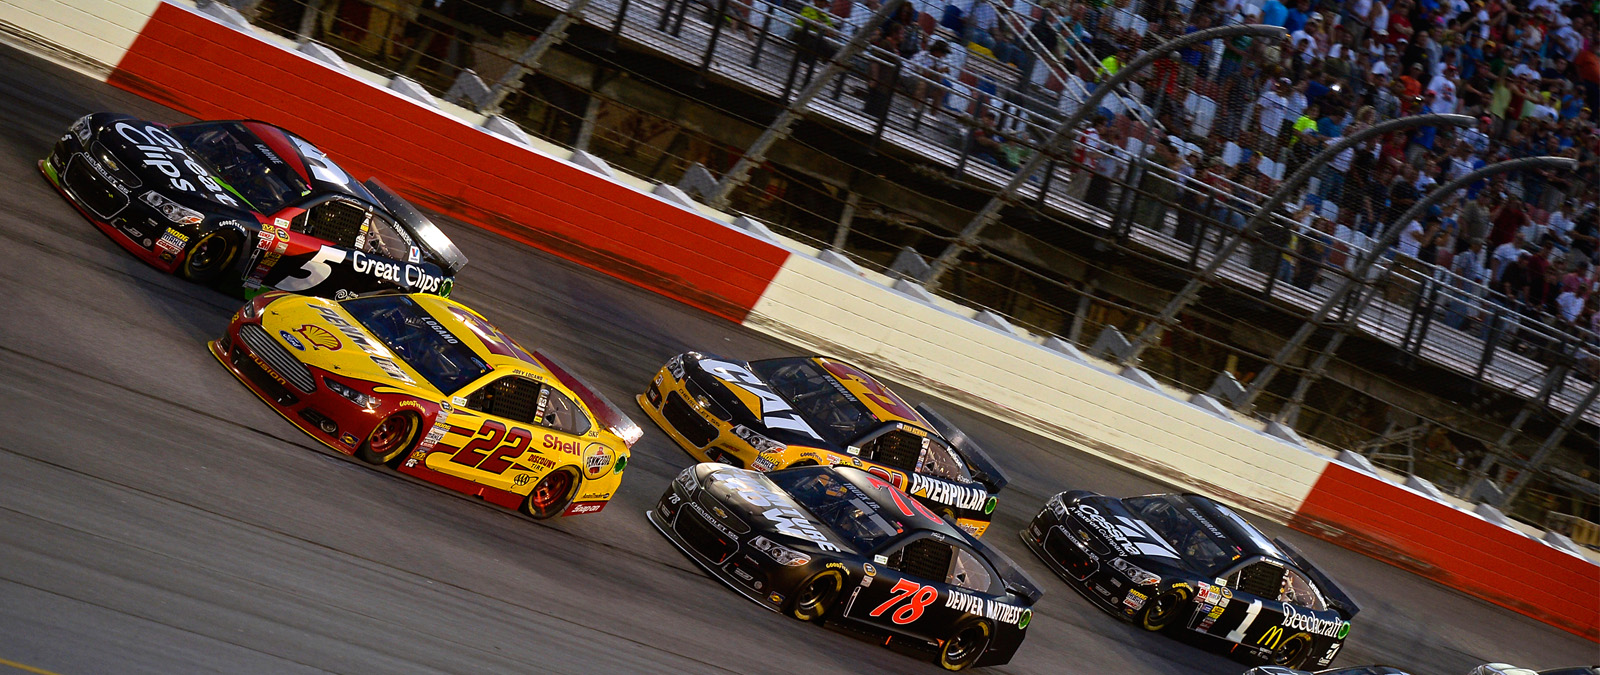 Darlington-Race-2014